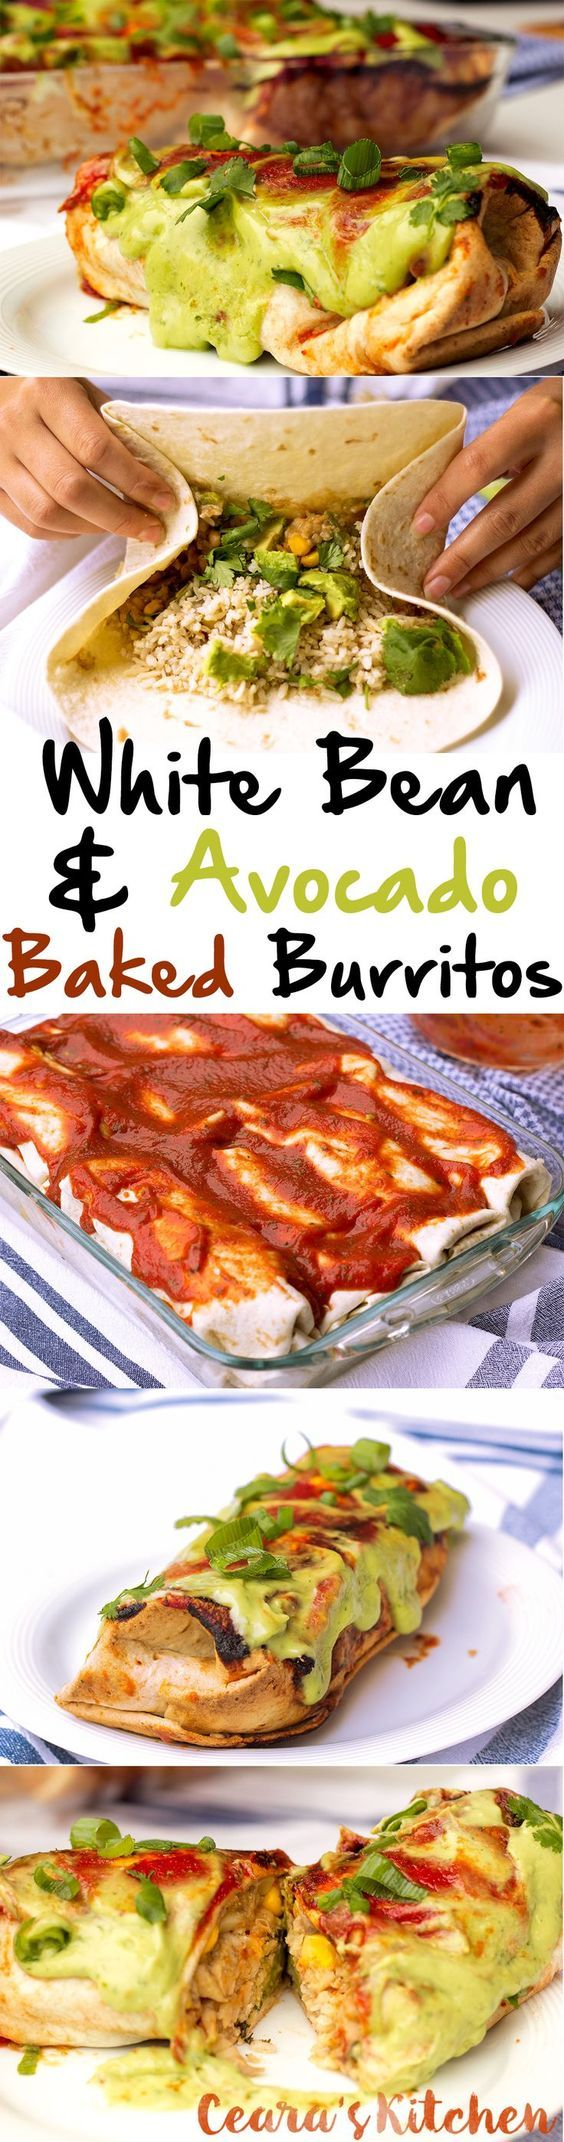 These White Bean and Avocado Baked Burritos make the perfect dinner - stuffed…